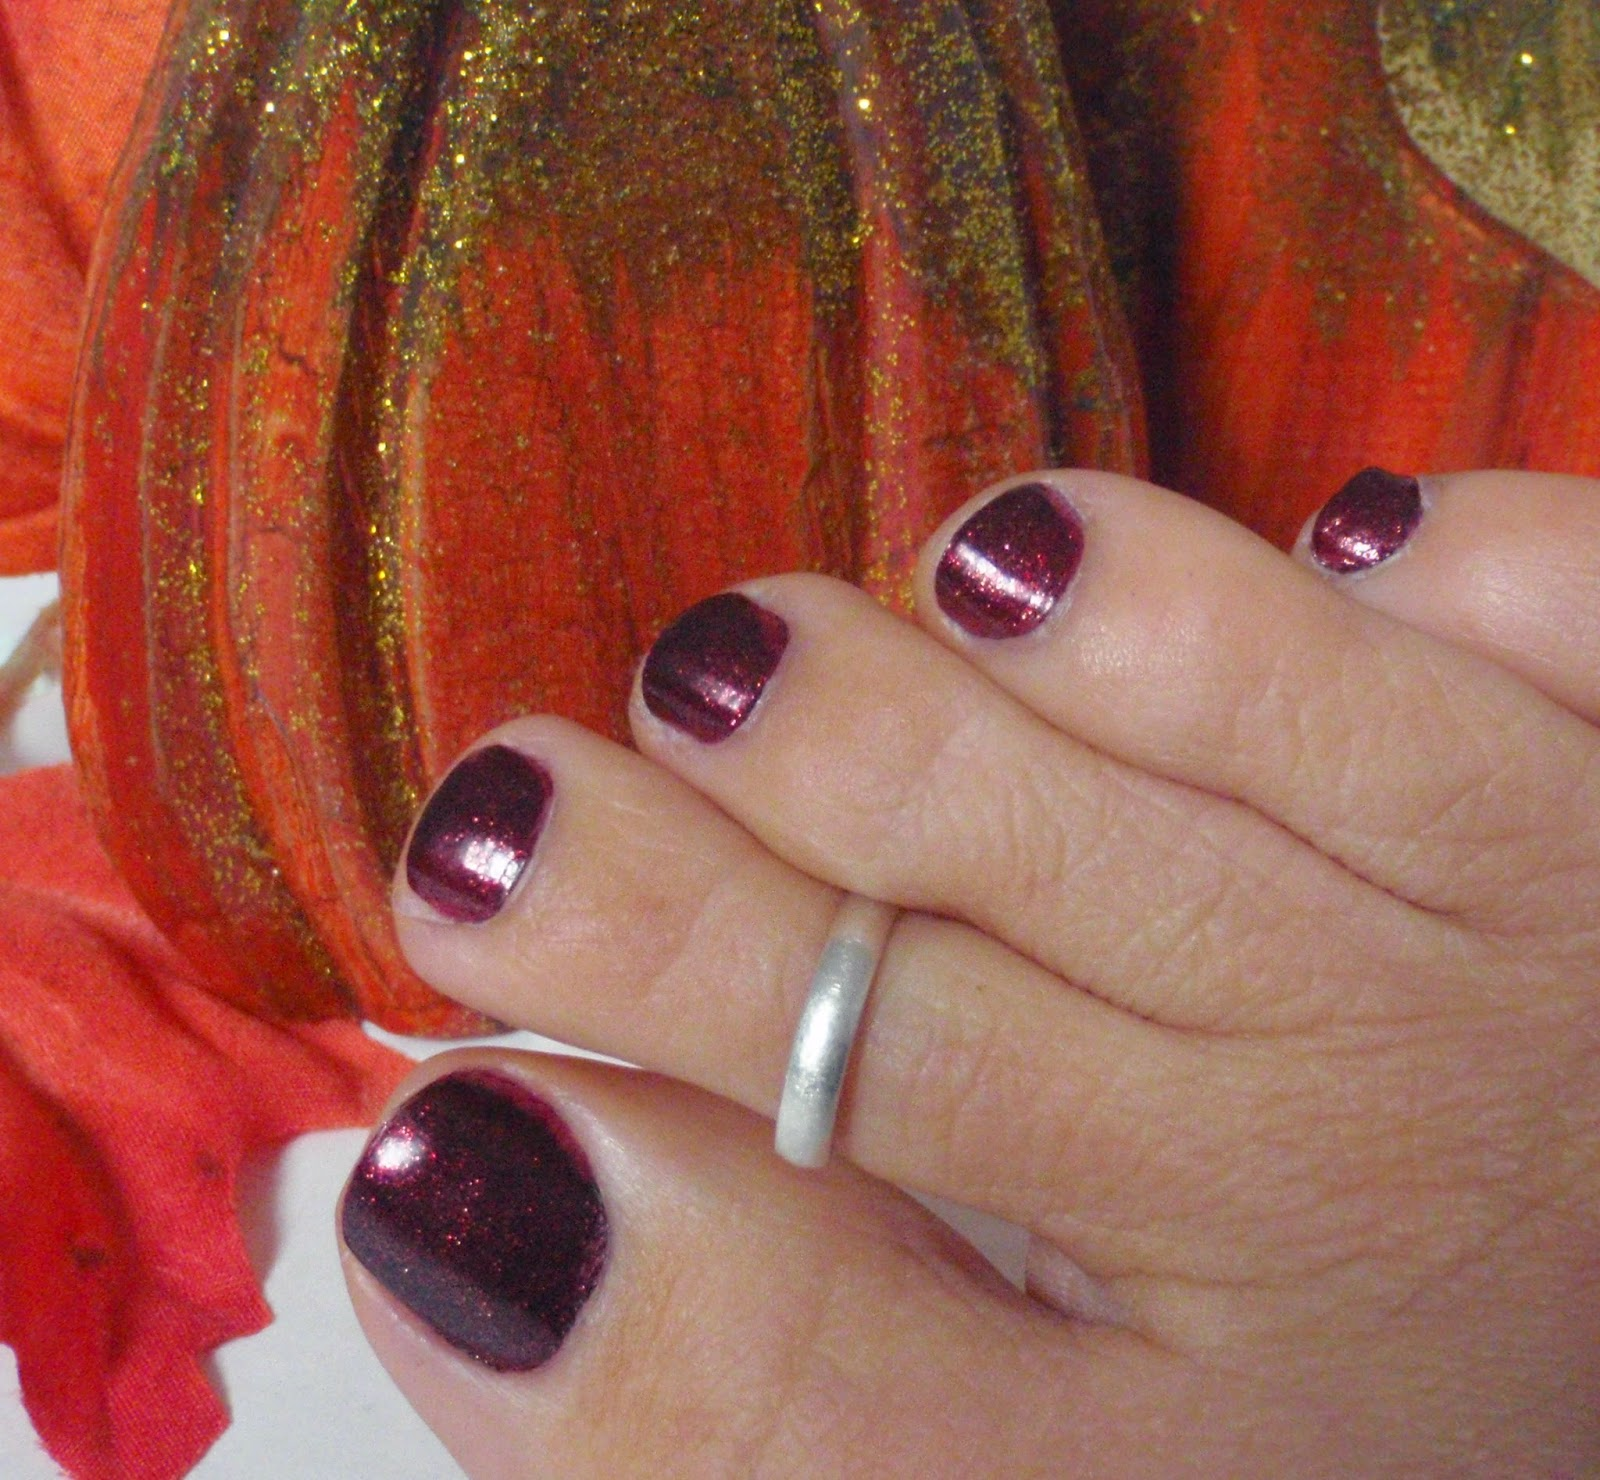 zoya india on toenails